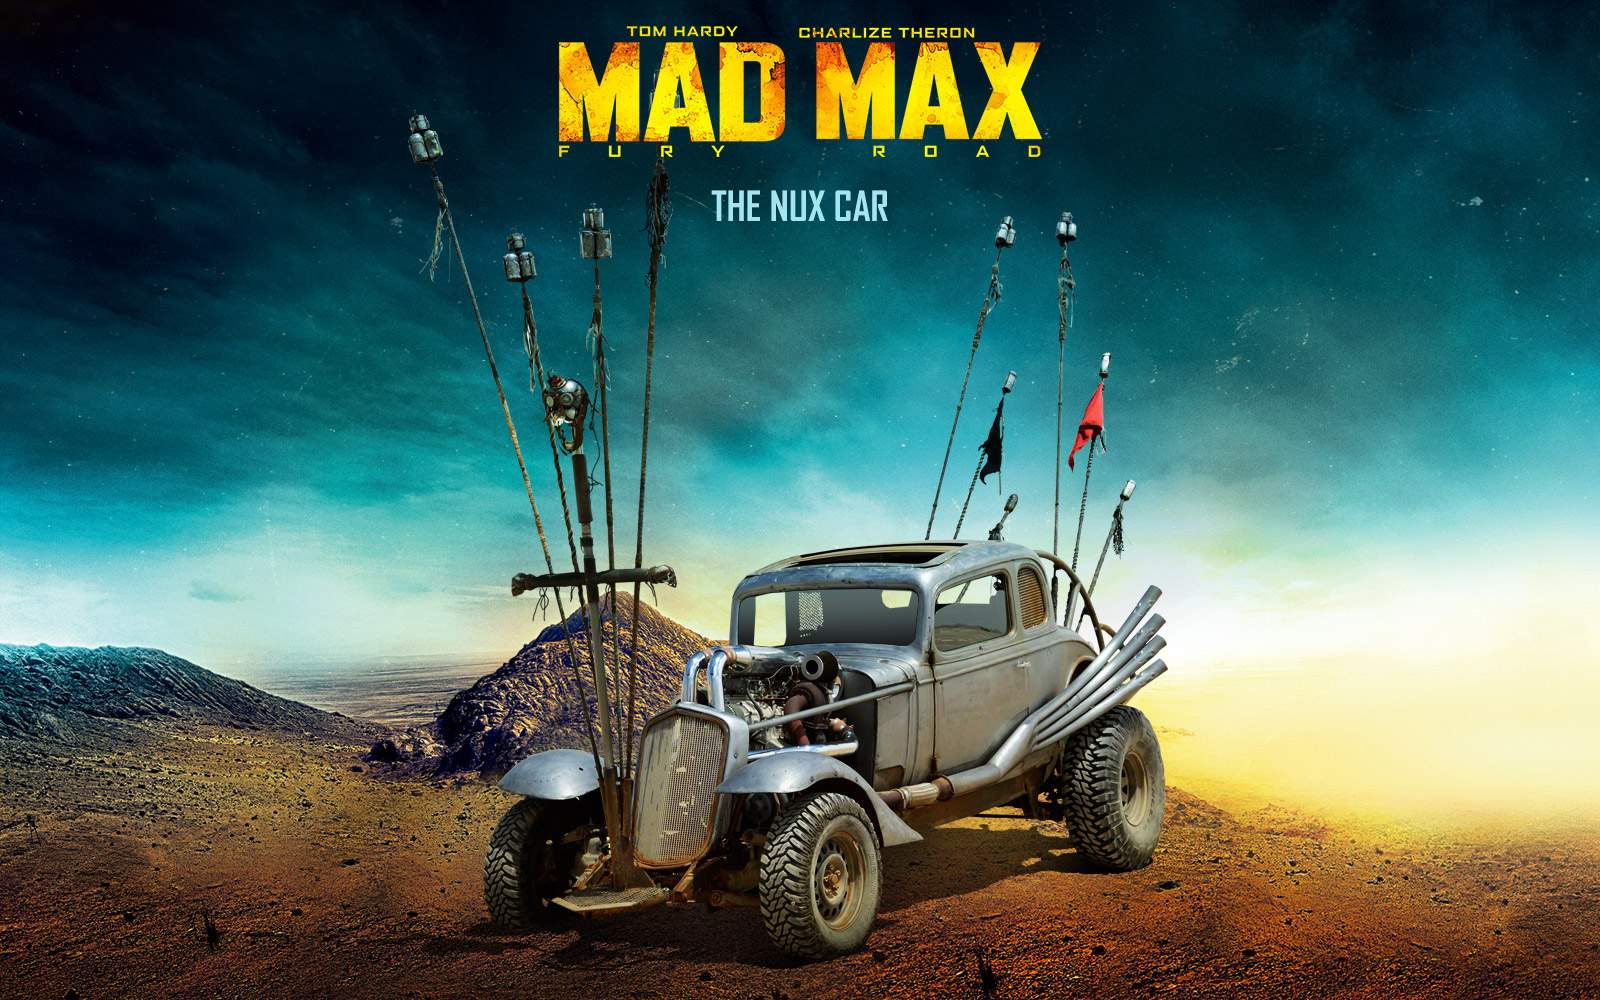 The Nux Car